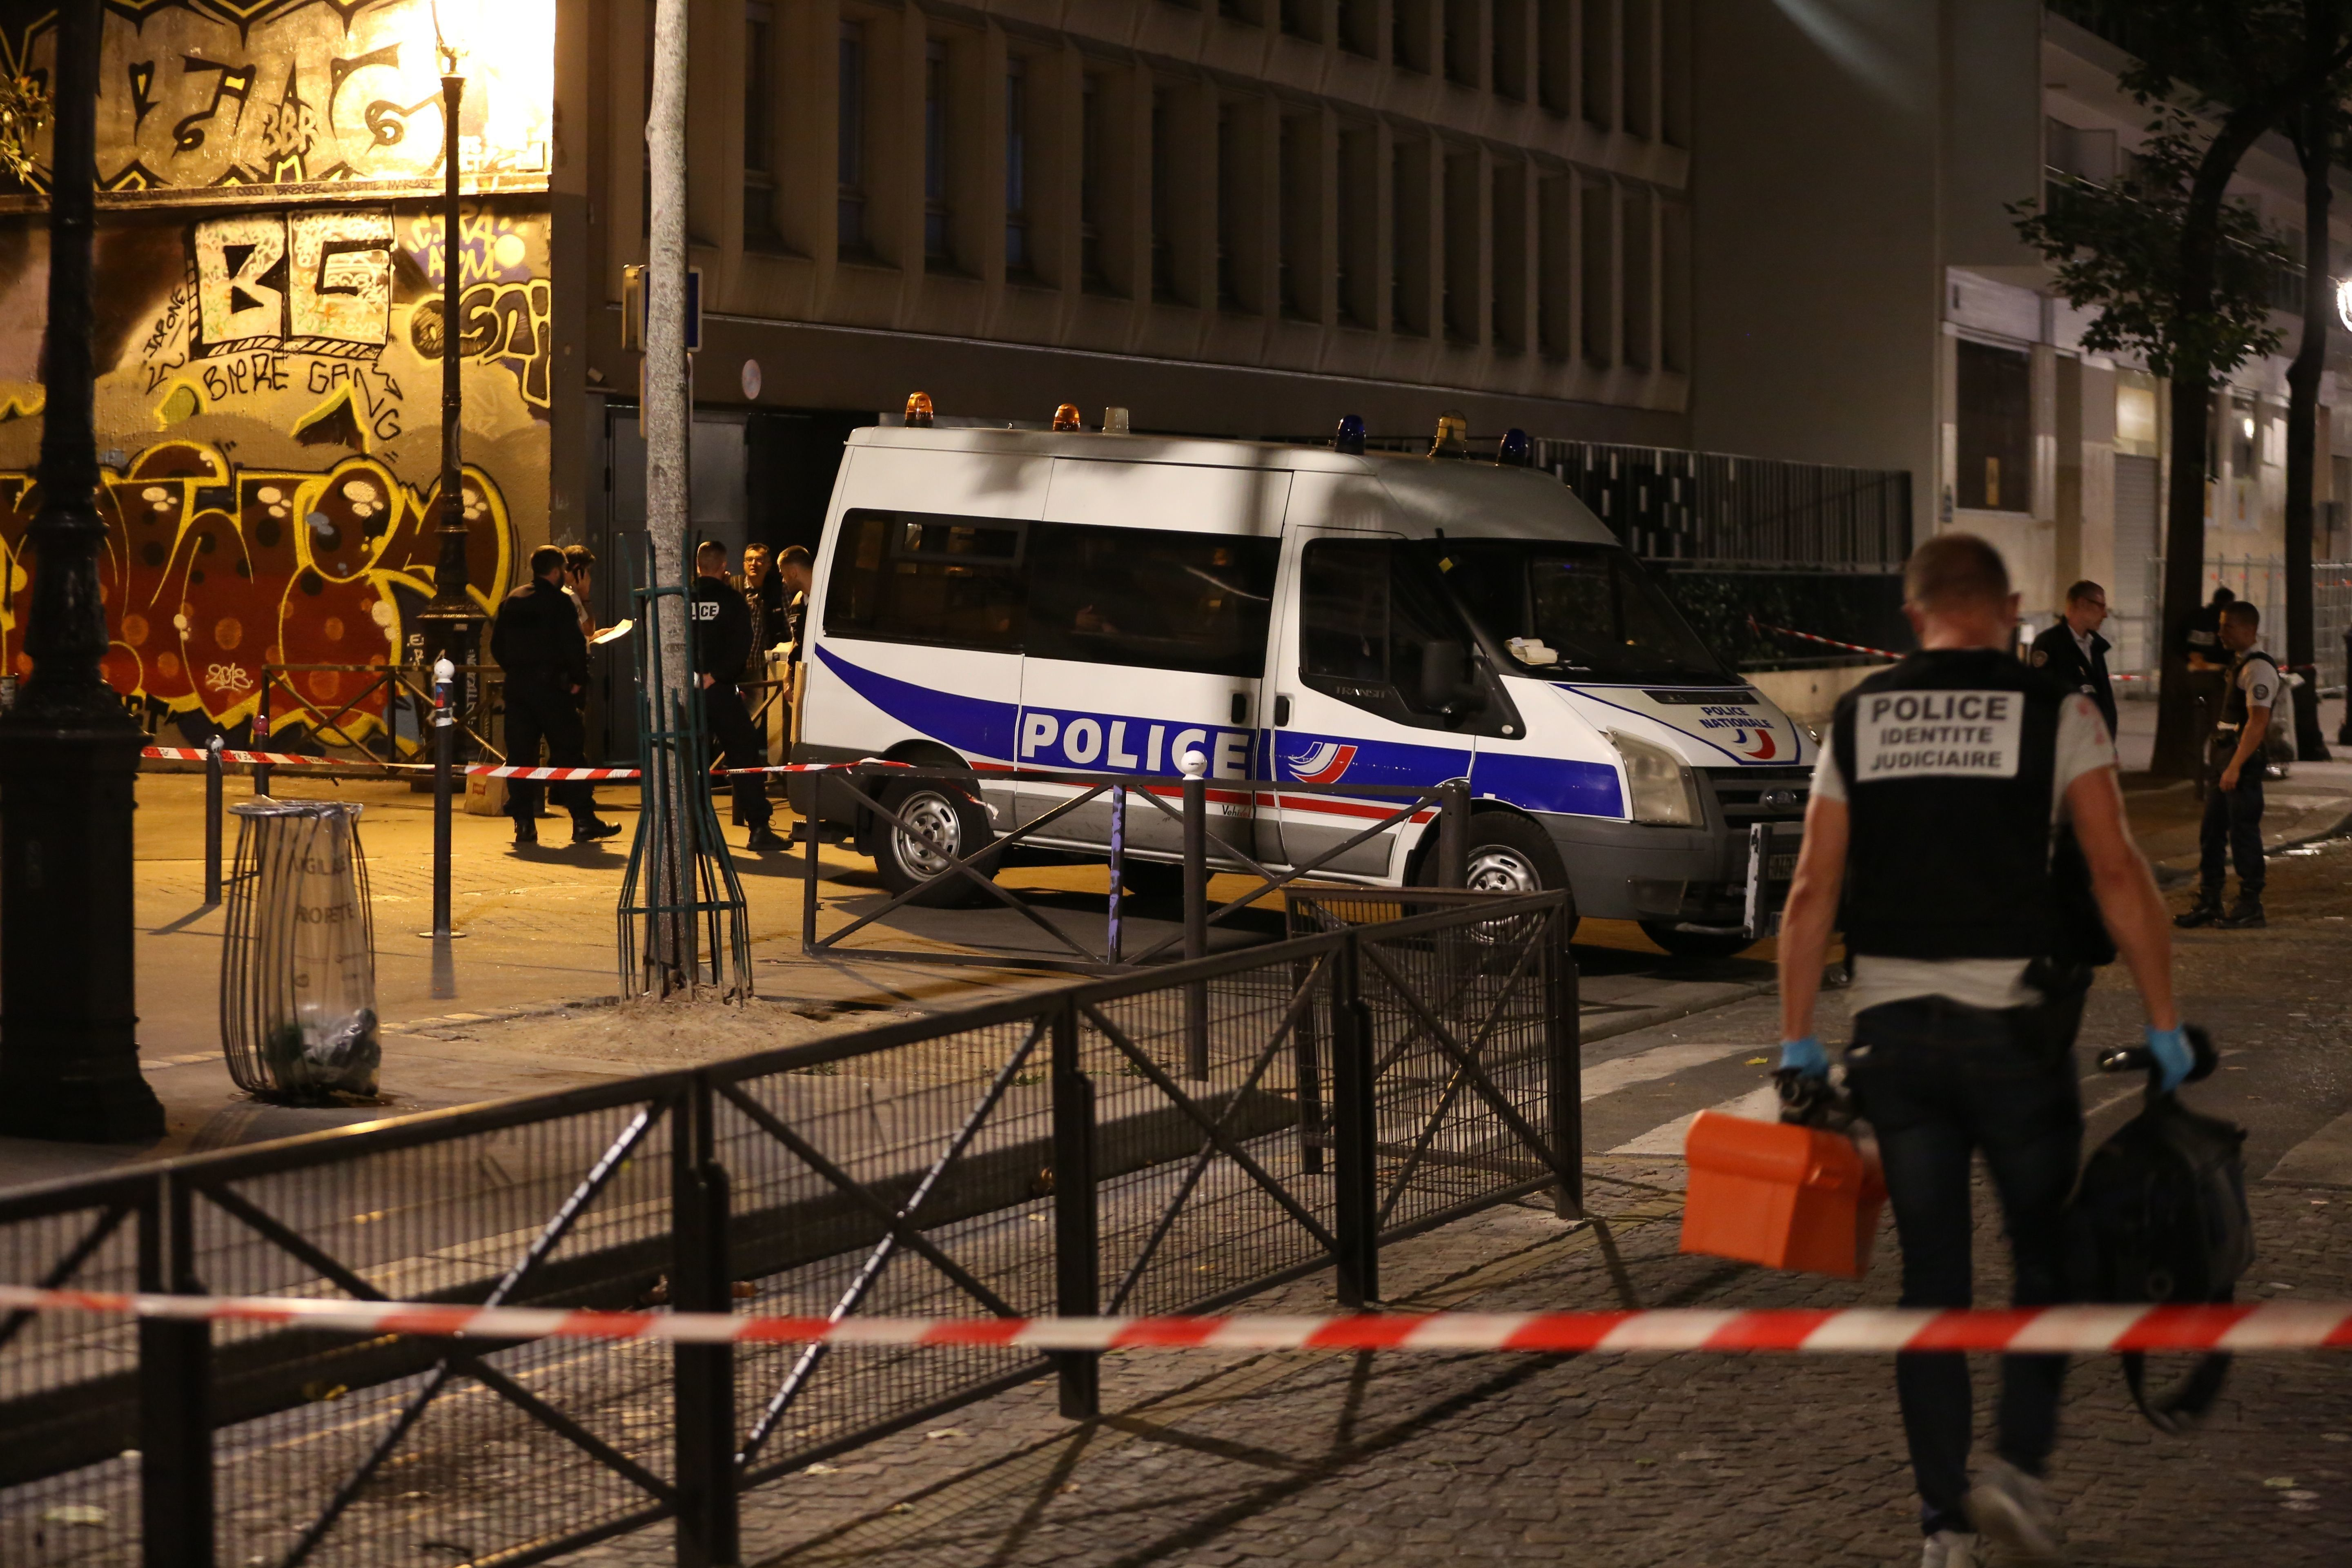 Man Arrested After Paris Knife Attack Sees Seven People